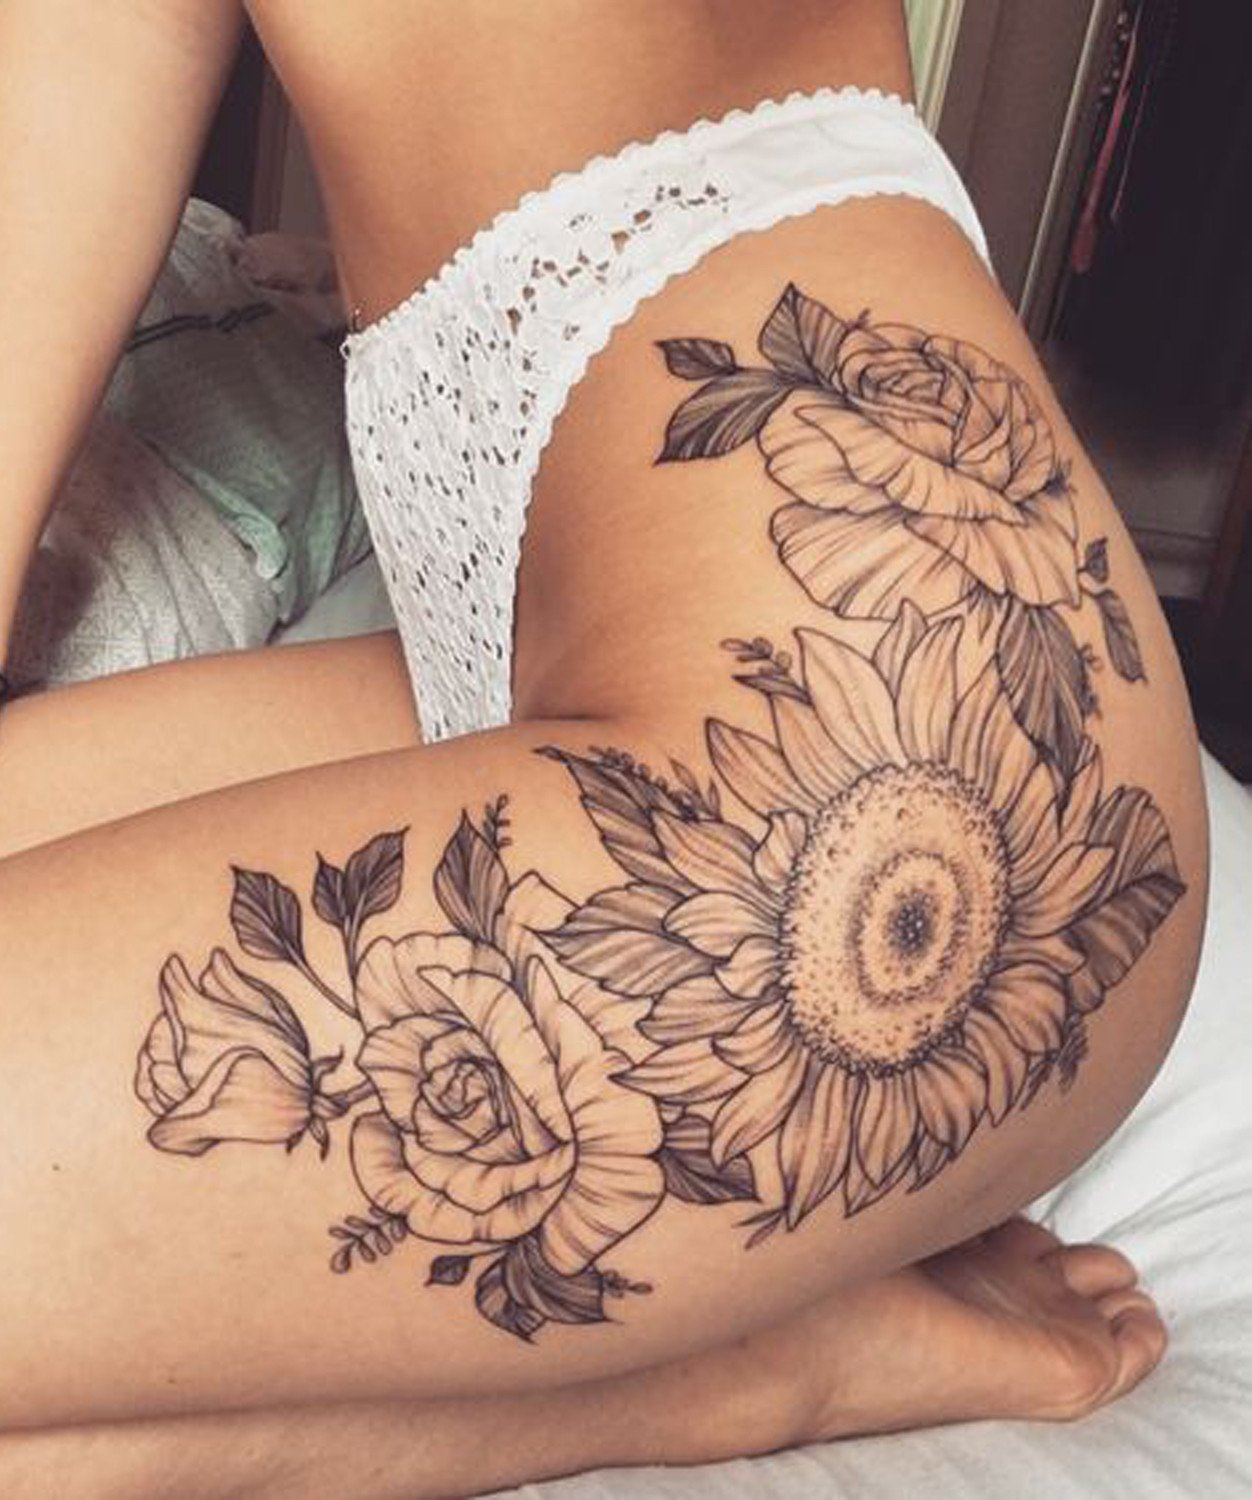 Vintage Black and White Realistic Sunflower Floral Leg Thigh Tattoo Ideas for Women at MyBodiArt.com